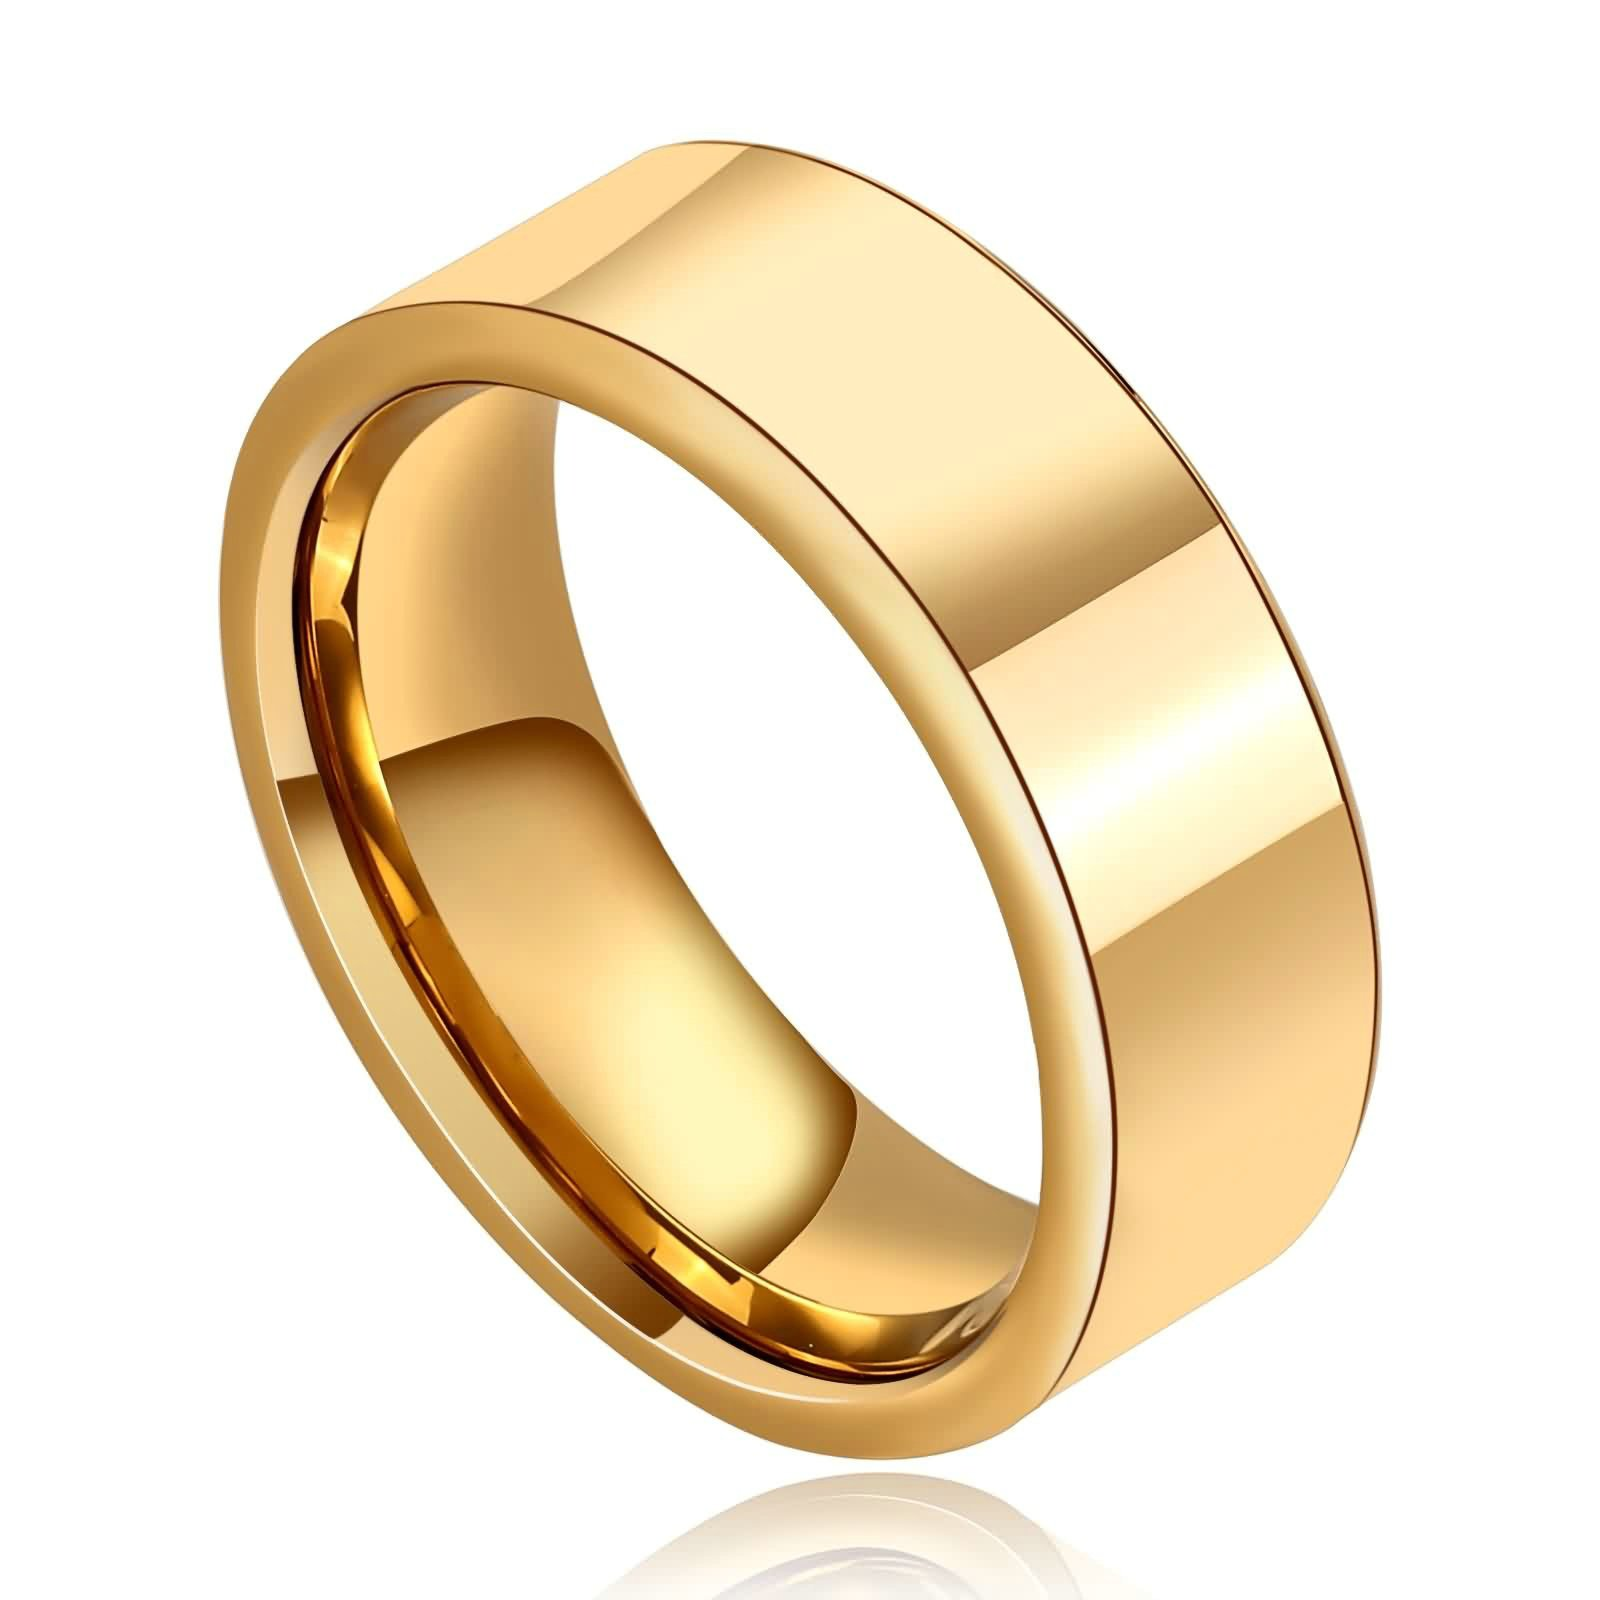 KnSam Stainless Steel Rings for Men Men's Ring Wide Flat Comfort Fit Wedding Band Gold Size 7